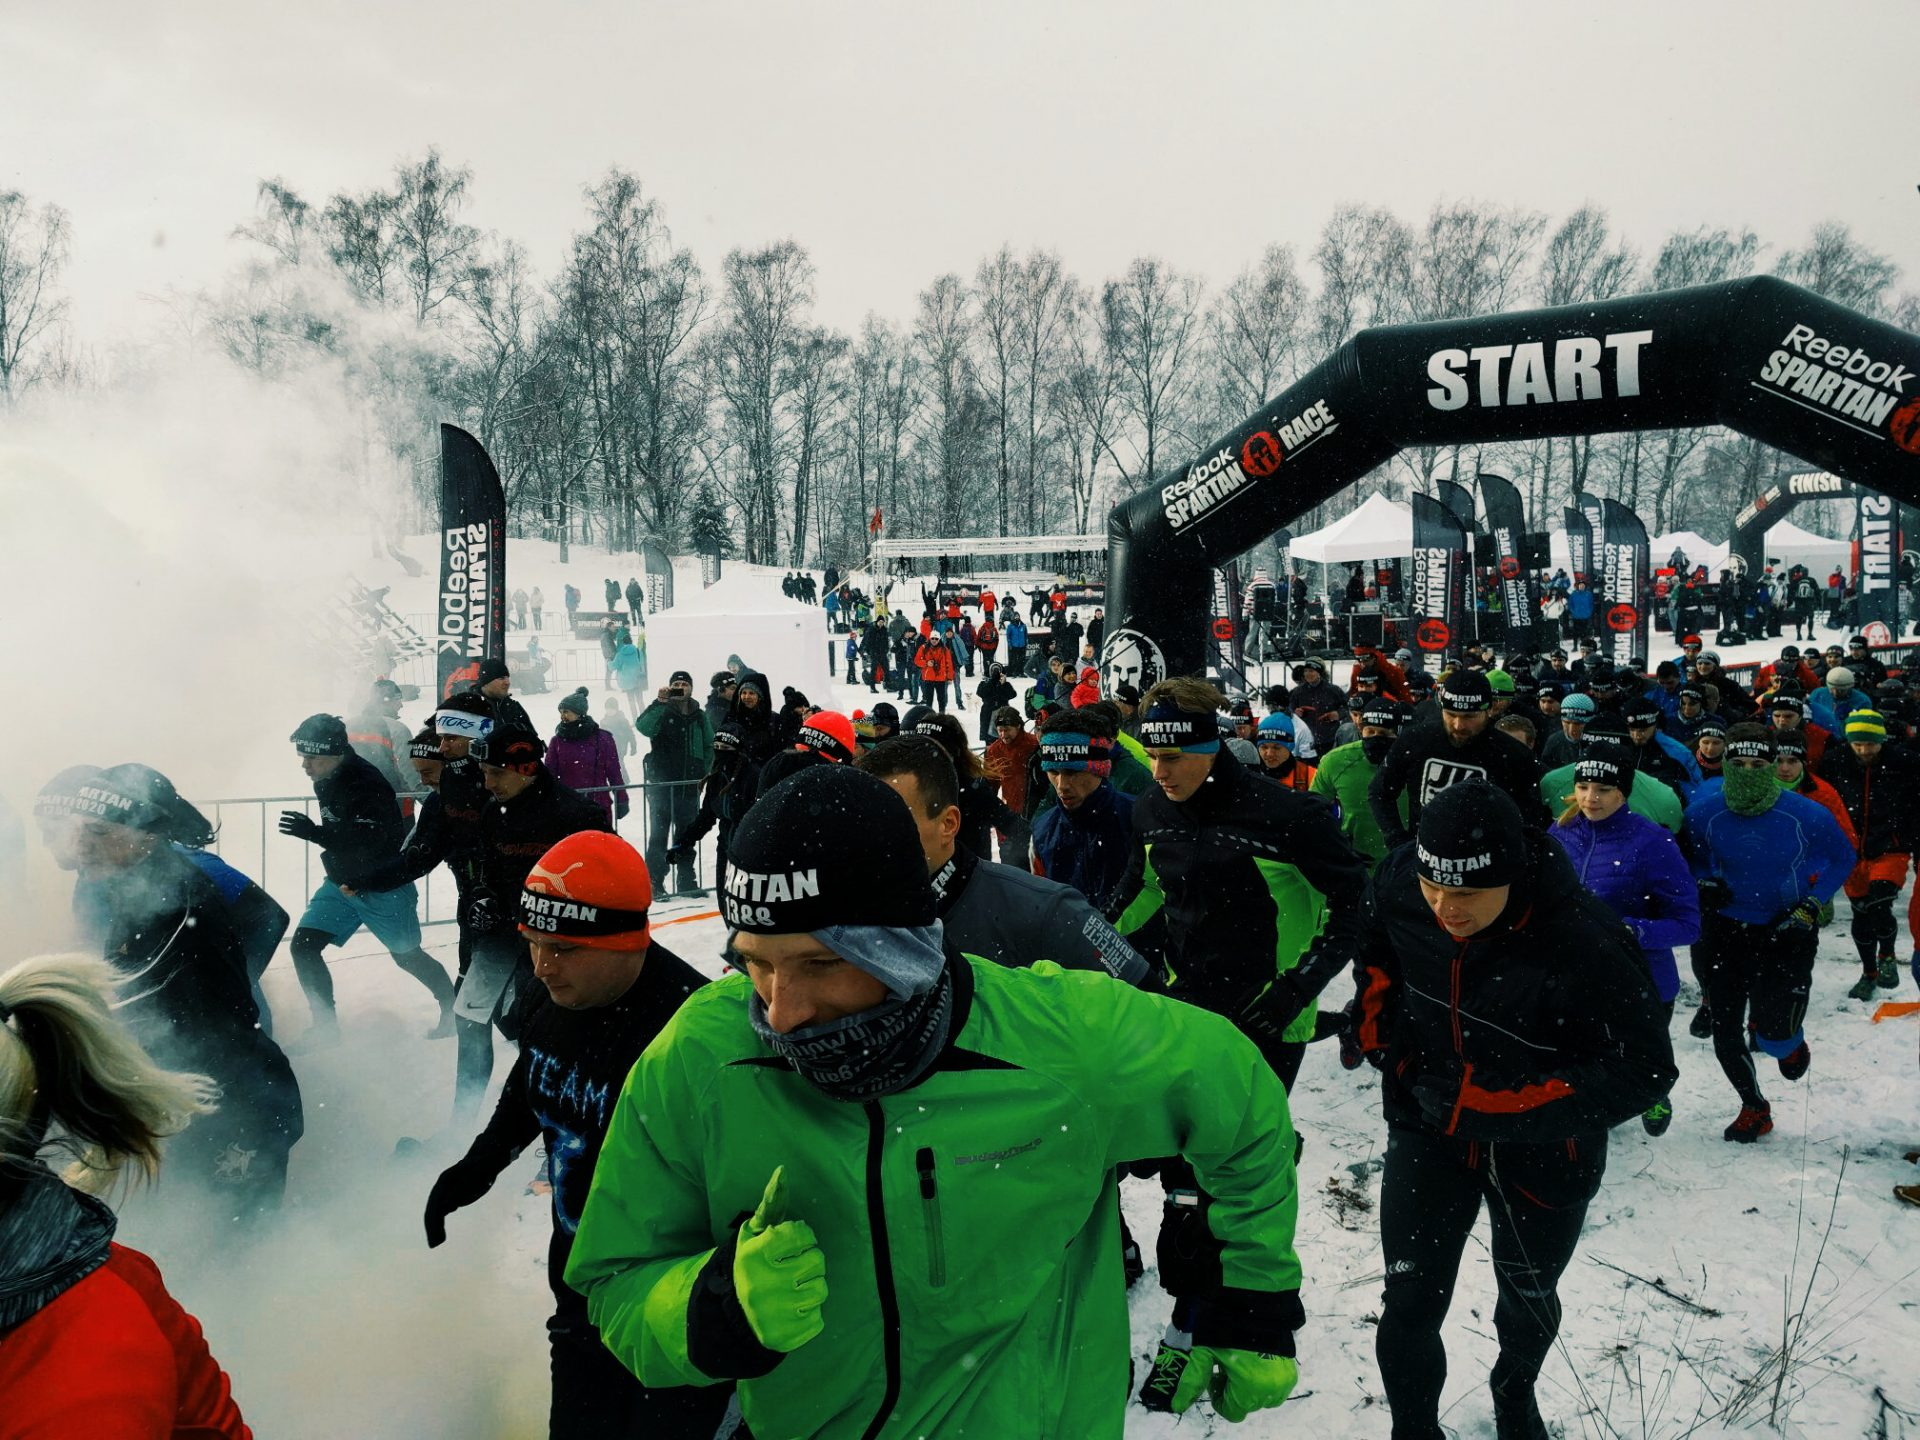 The Cool Impressions of Our First Winter Spartan Race in Liberec CZ